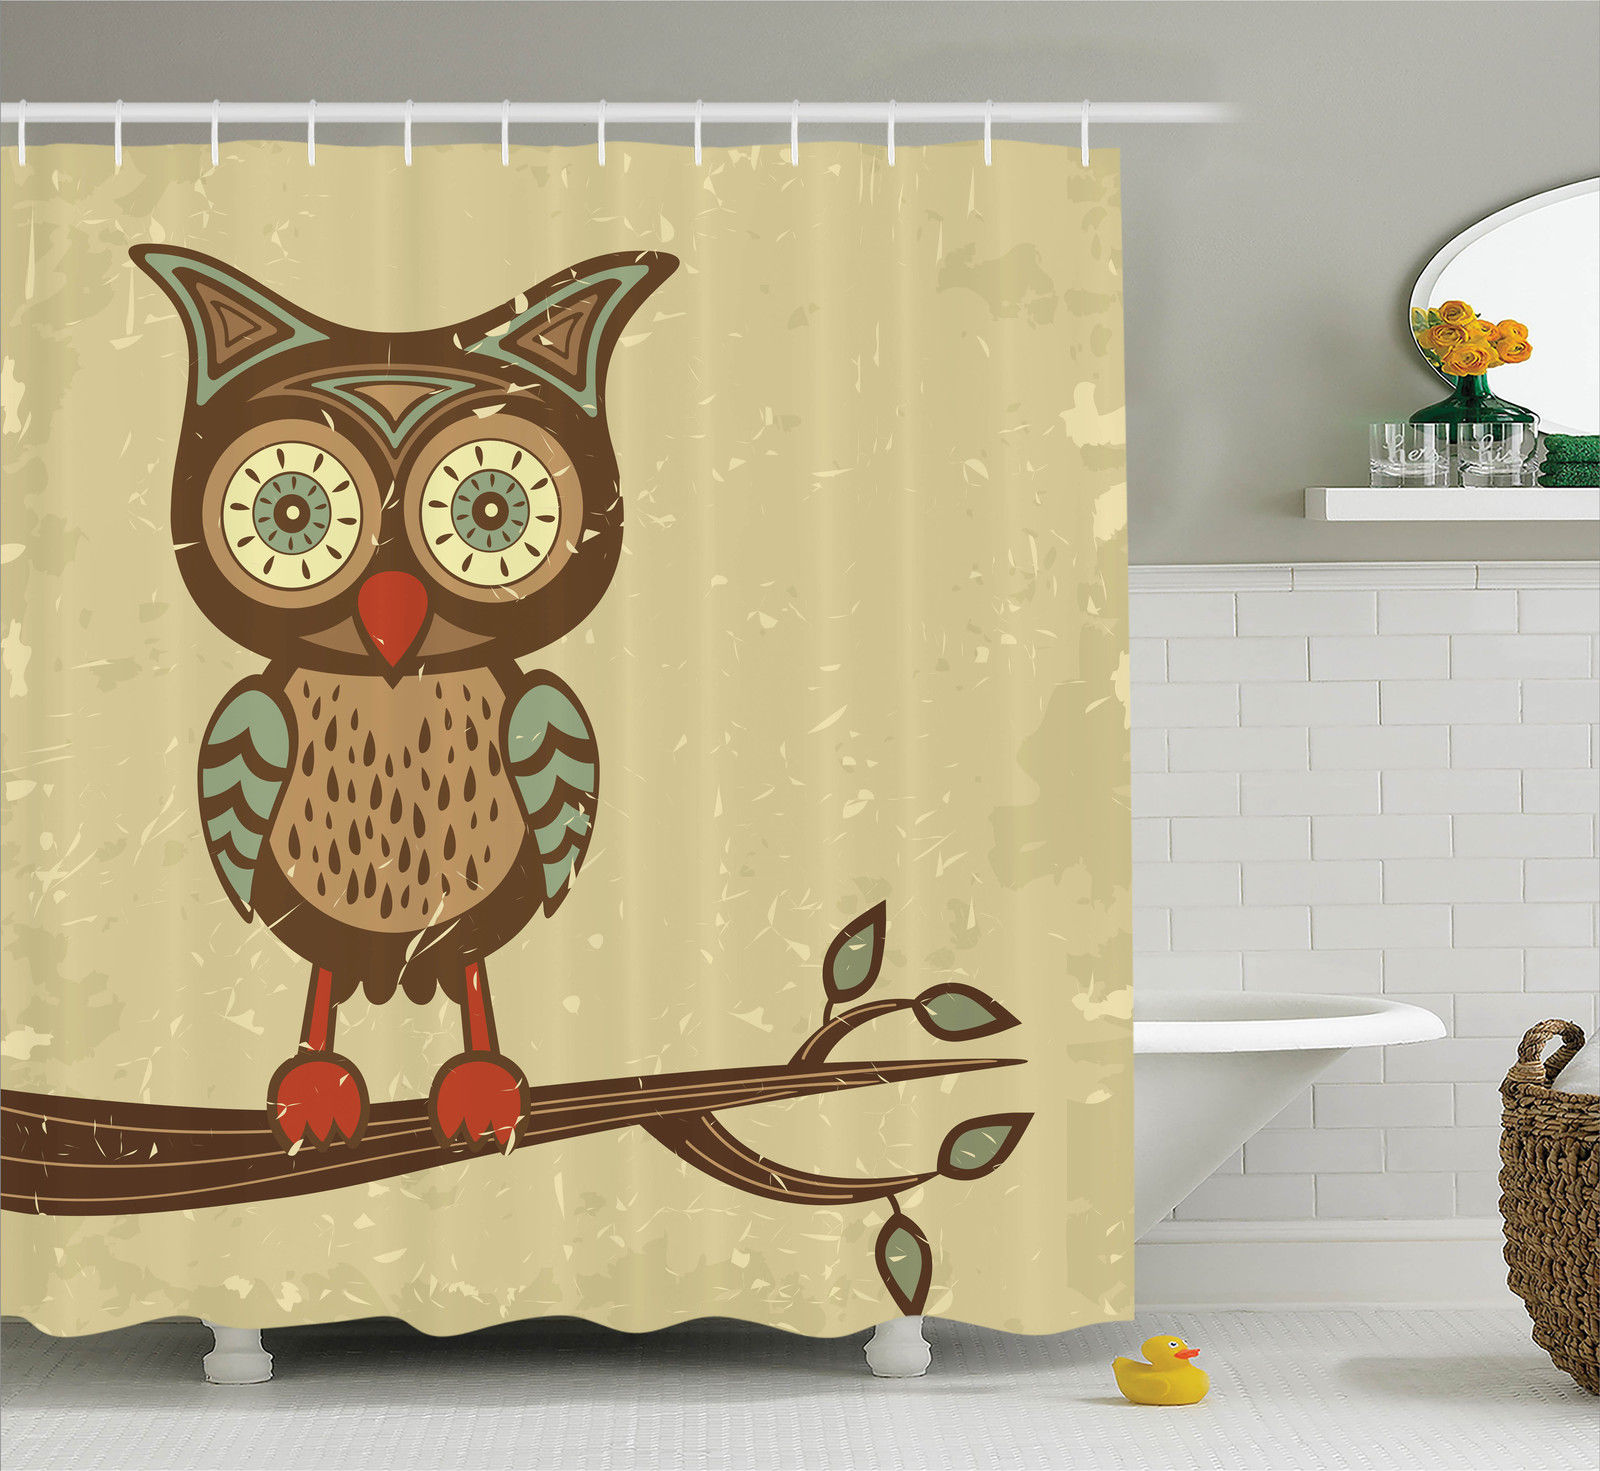 Cute Owl Decor Owls Home Decor Shower Curtain Set Cute Owl Sitting On Branch Eyesight Animal Humor Pastel Retro Modern Graphic Bathroom Accessories 69w X 70l